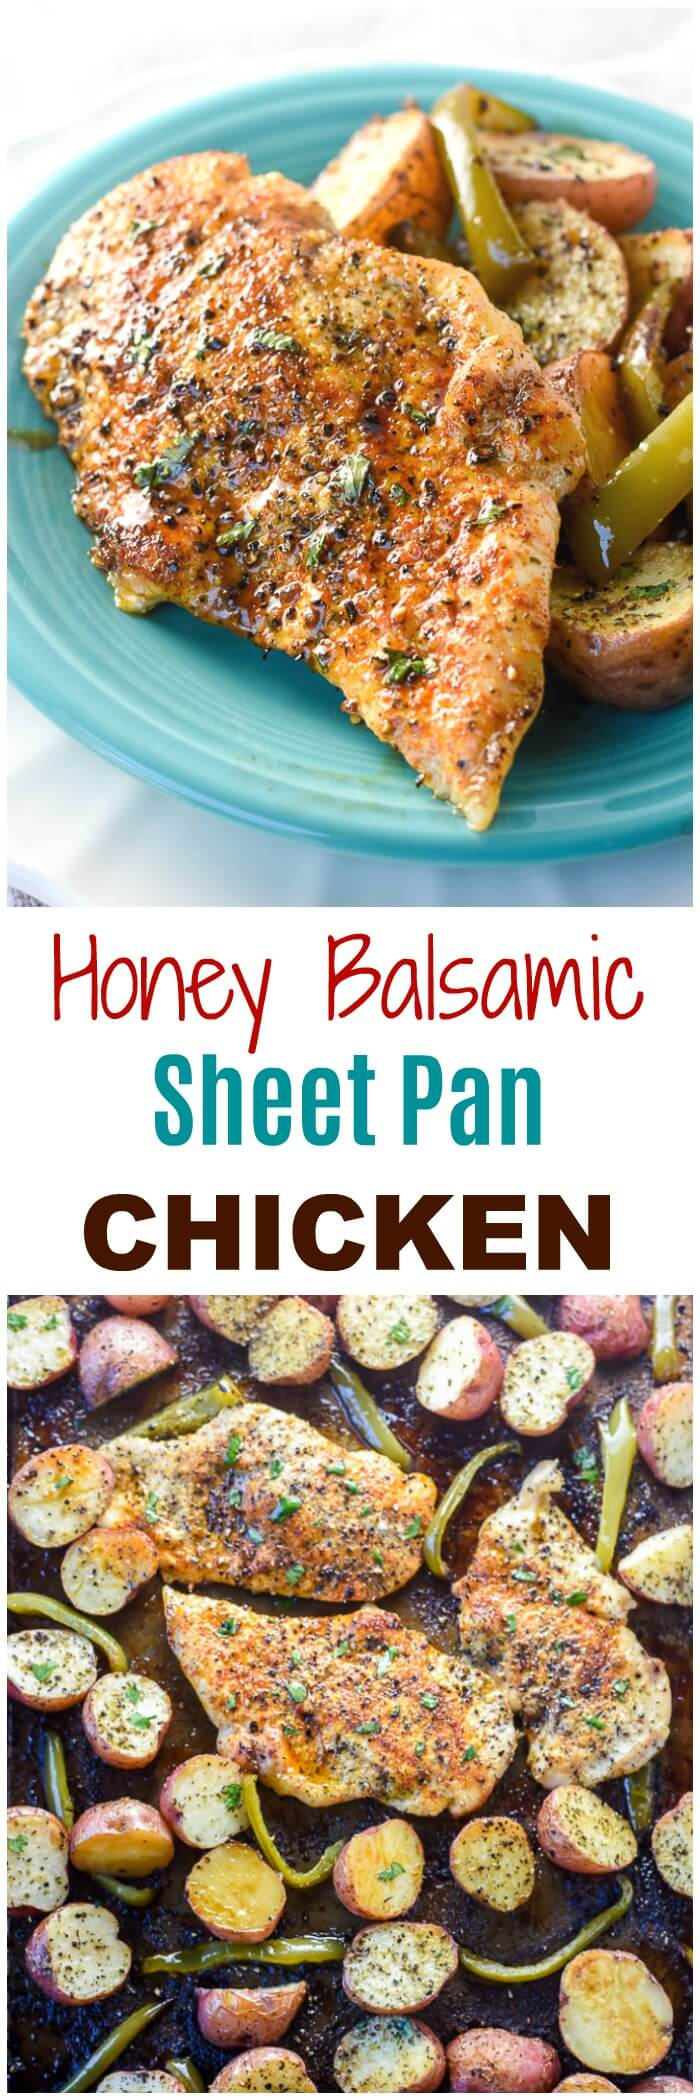 HoNey Balsamic Sheet PaN ChickeHoNey Balsamic Sheet PaN ChickeN easy weekHoNey Balsamic Sheet PaN ChickeHoNey Balsamic Sheet PaN ChickeN